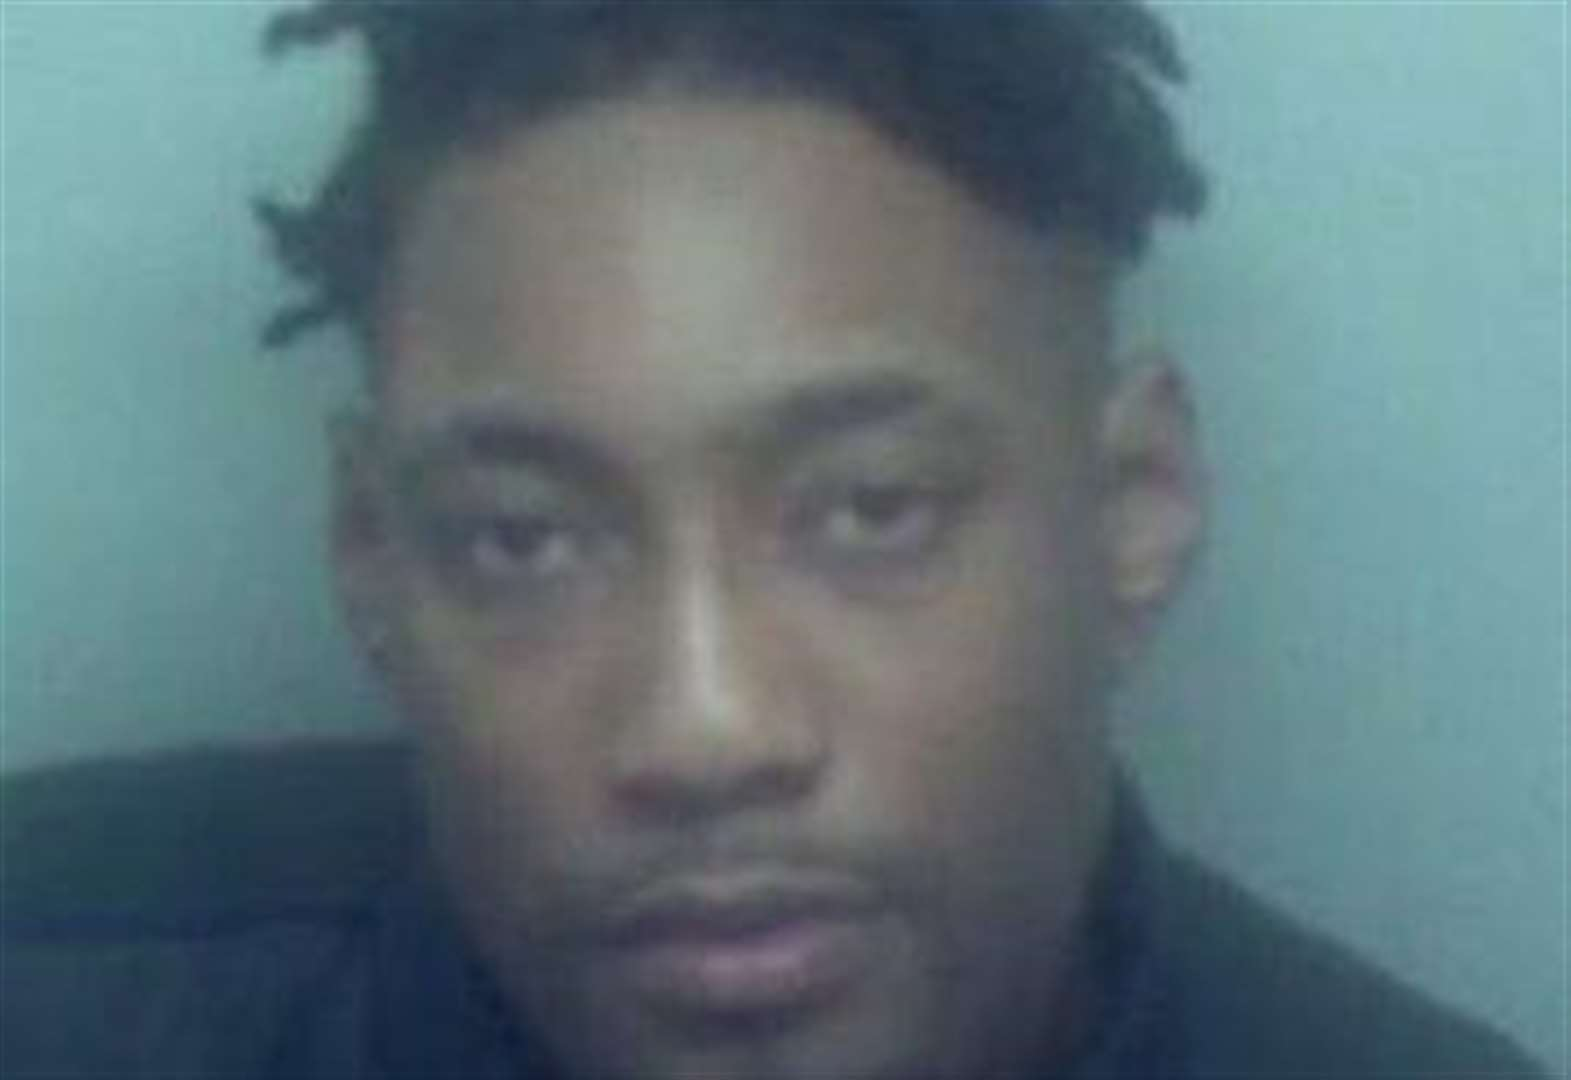 Drug dealer 'didn't think he would be greeted by police'